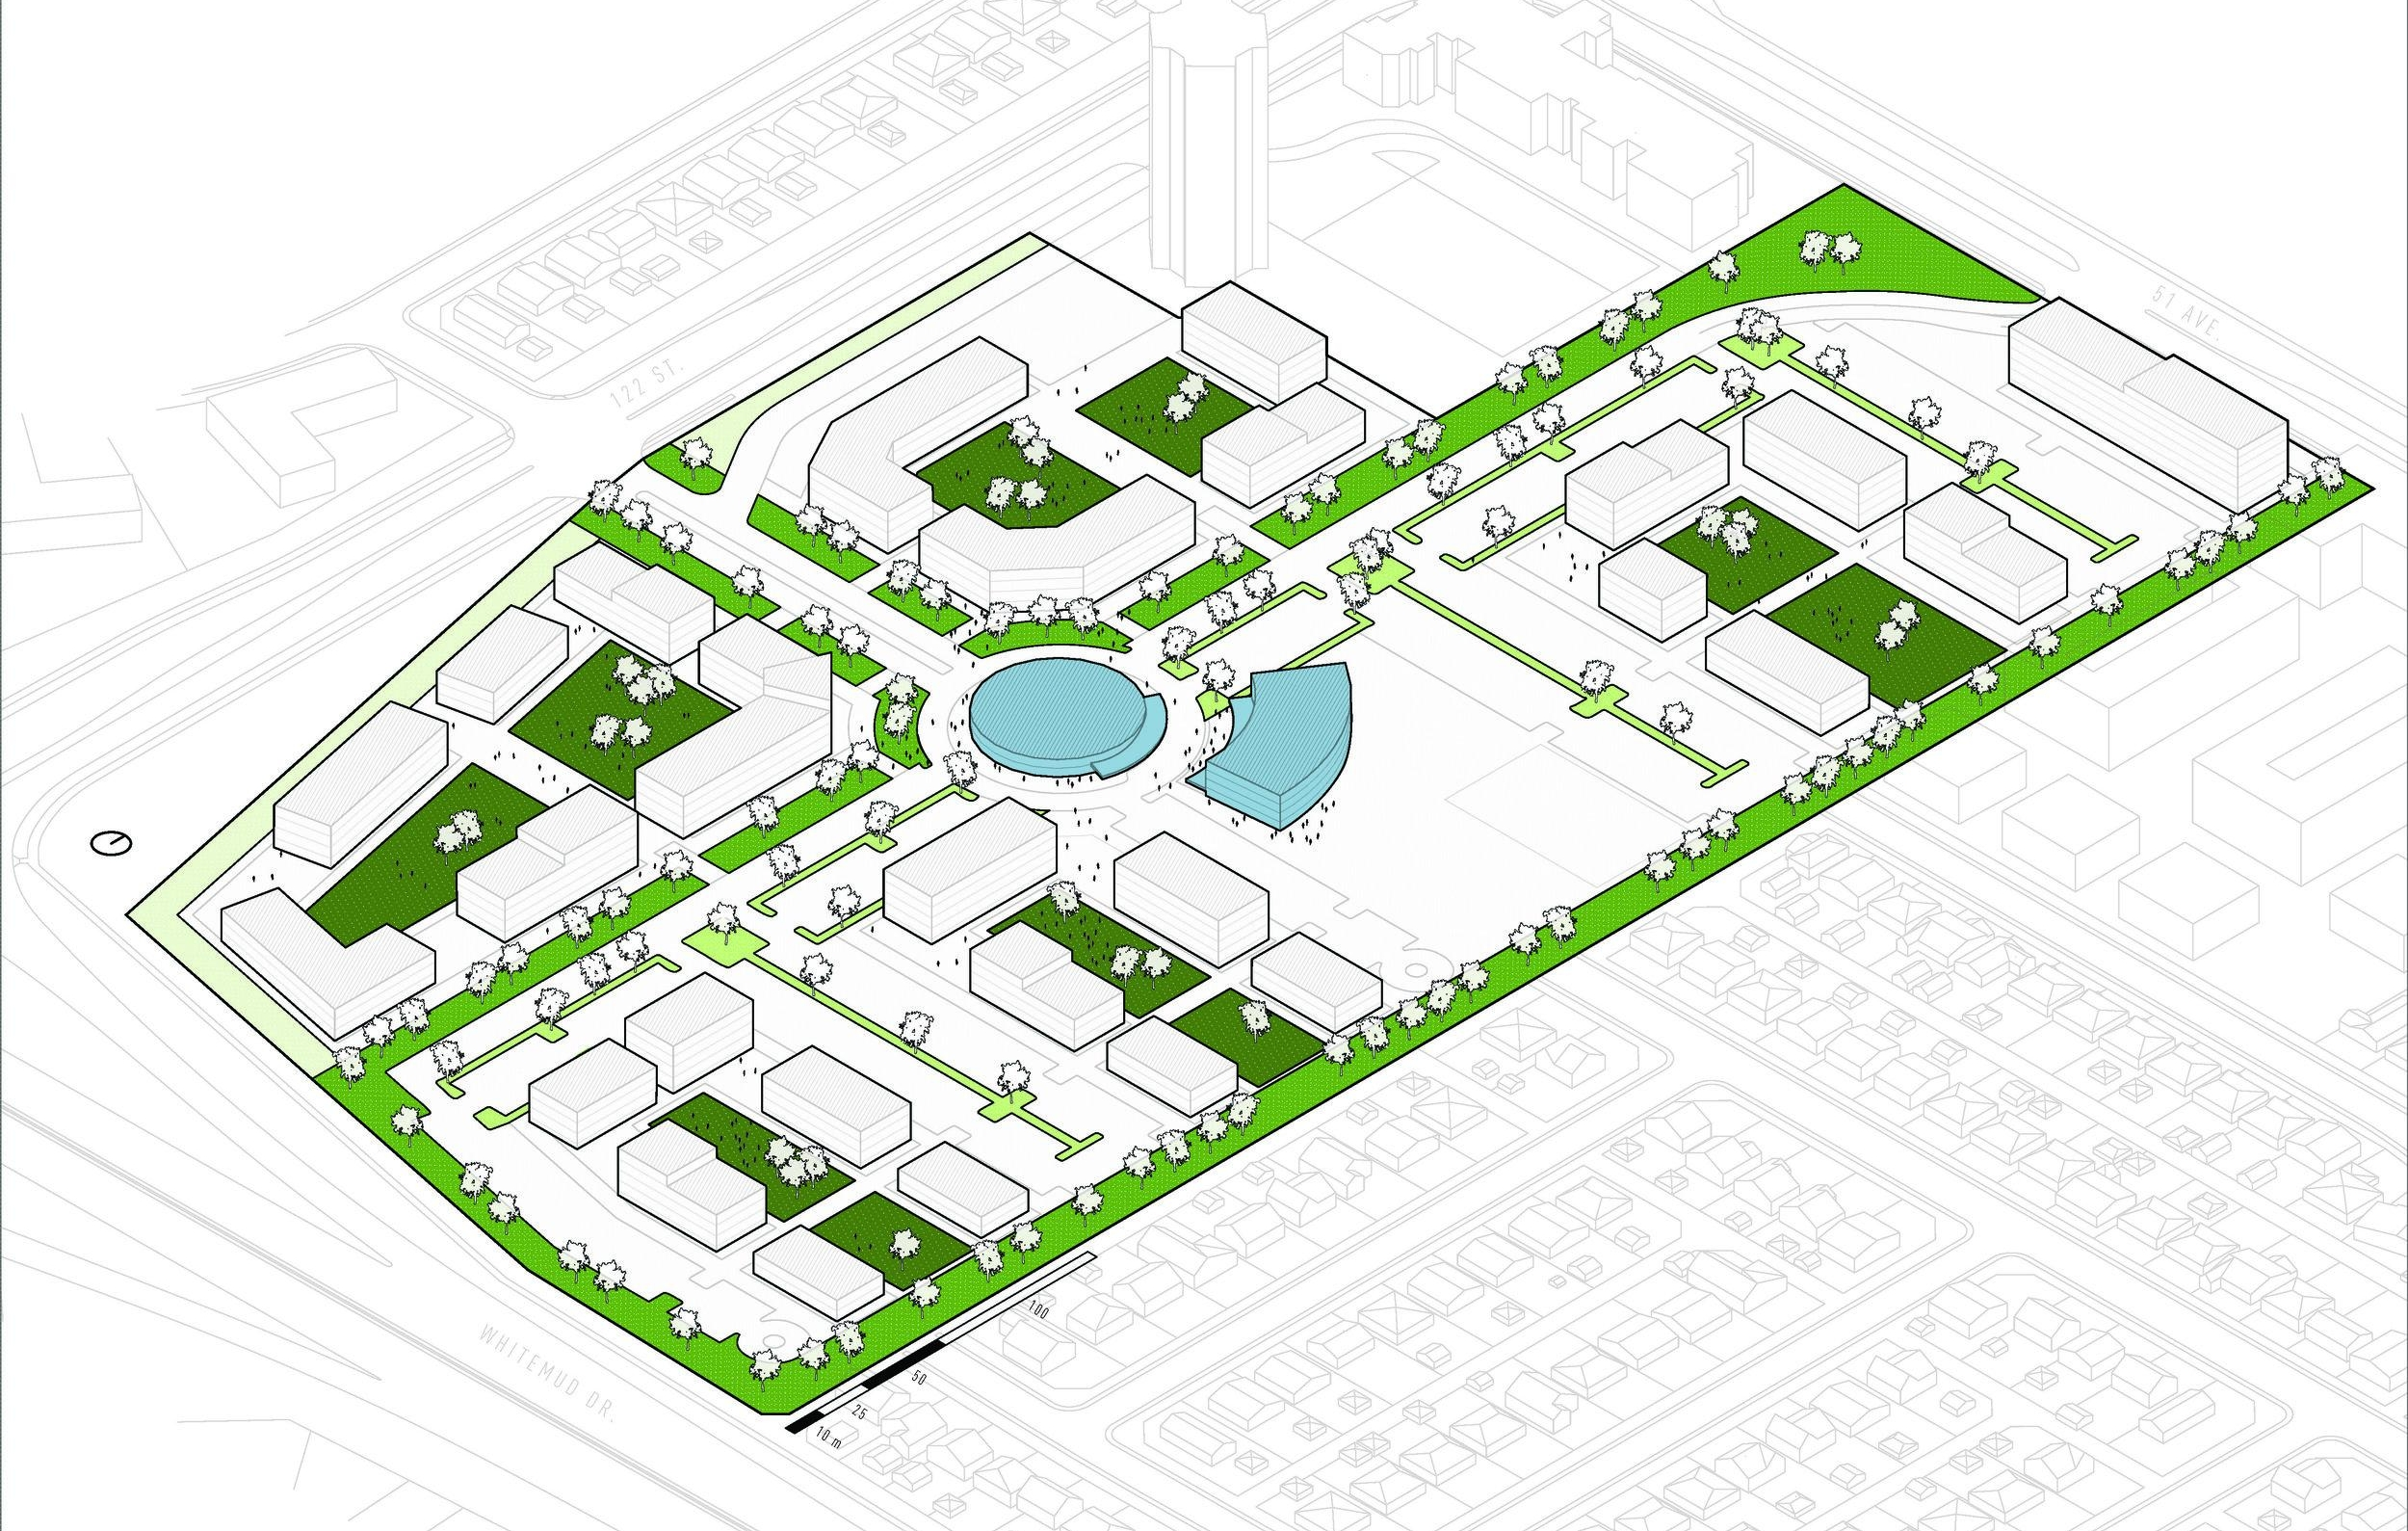 U of A Michener Park Sector Plan